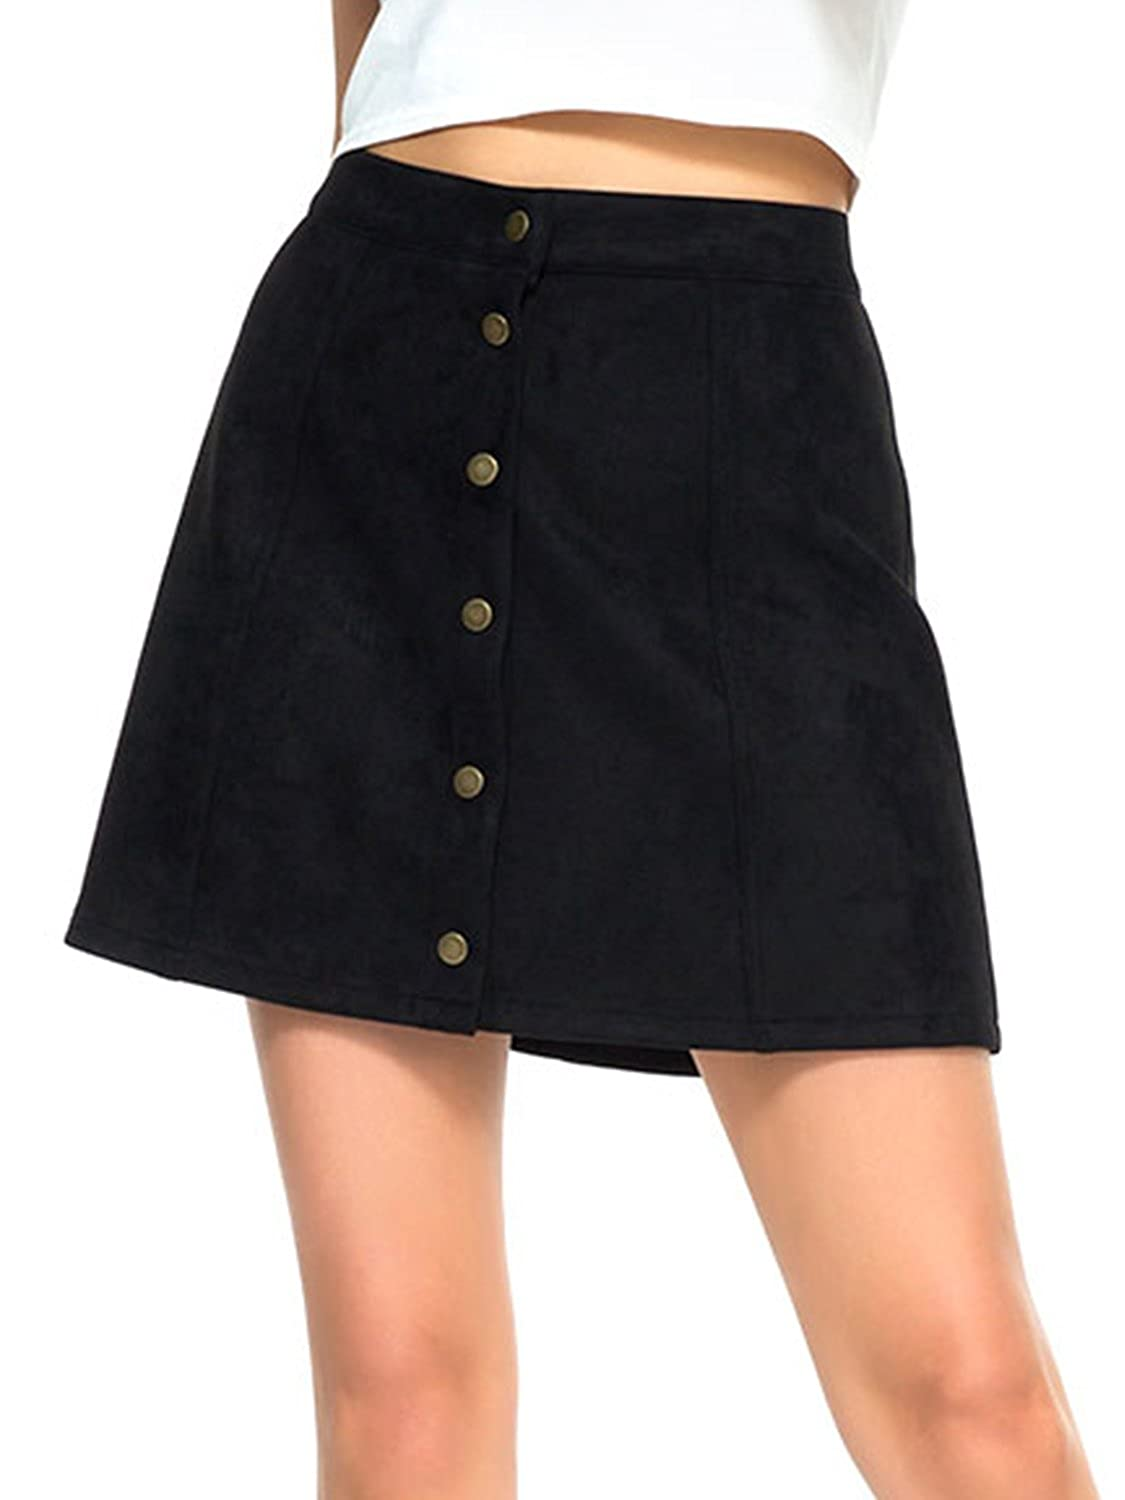 5337b6e519 The Blend of Cotton and Polyester Makes for a Very Soft and Comfortable  Fabric with a Nice Stretch,Stylish Women A-line Denim Skirts Make You Full  of ...